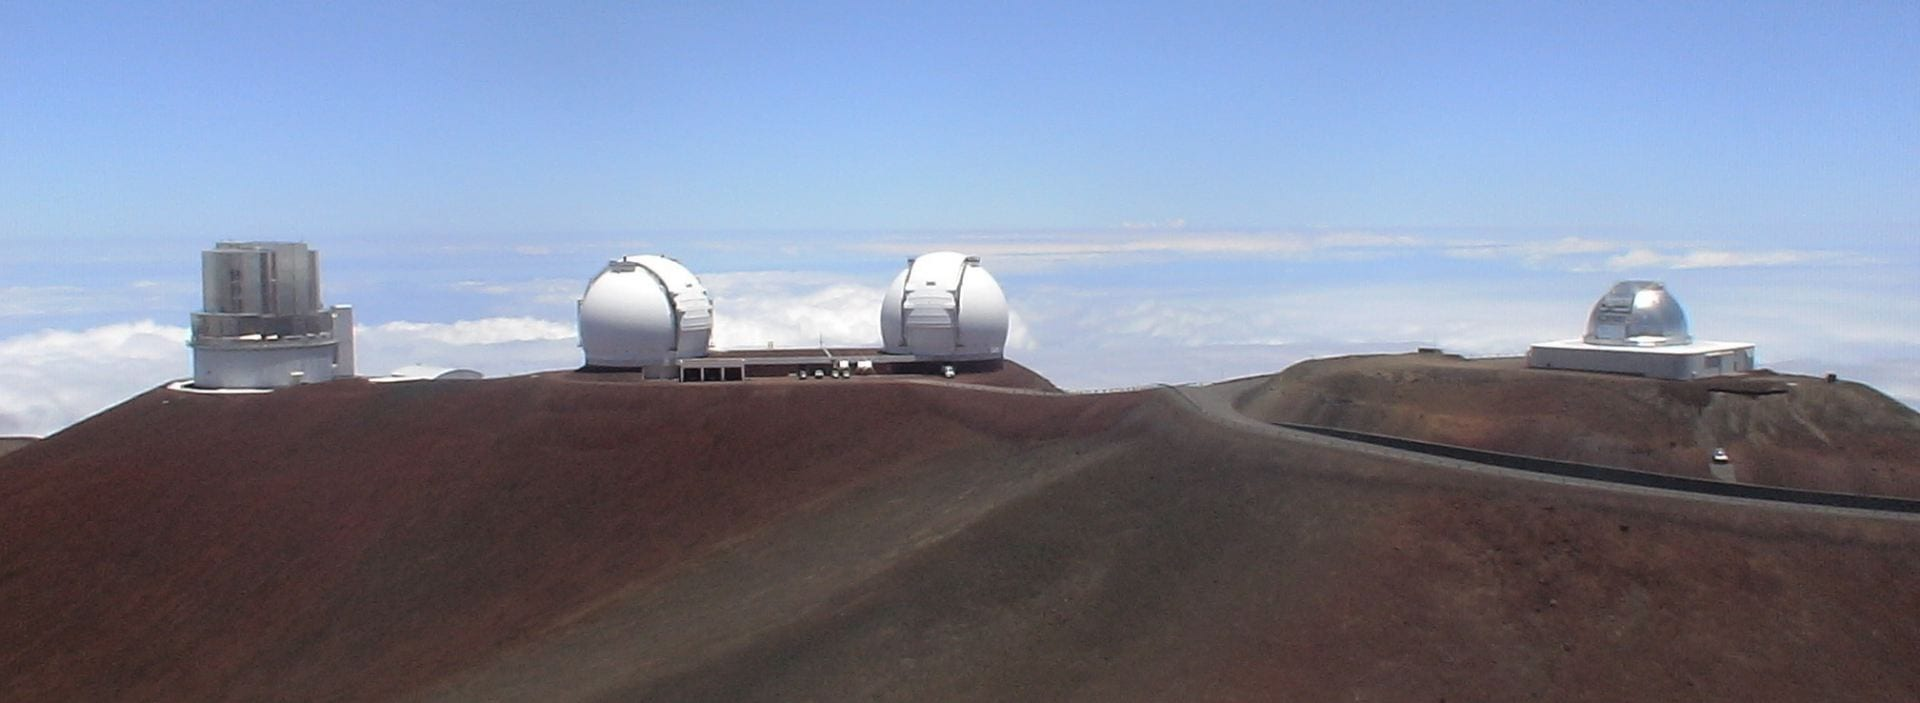 The domes of four telescopes on top of a mountain with the clouds visible below them.